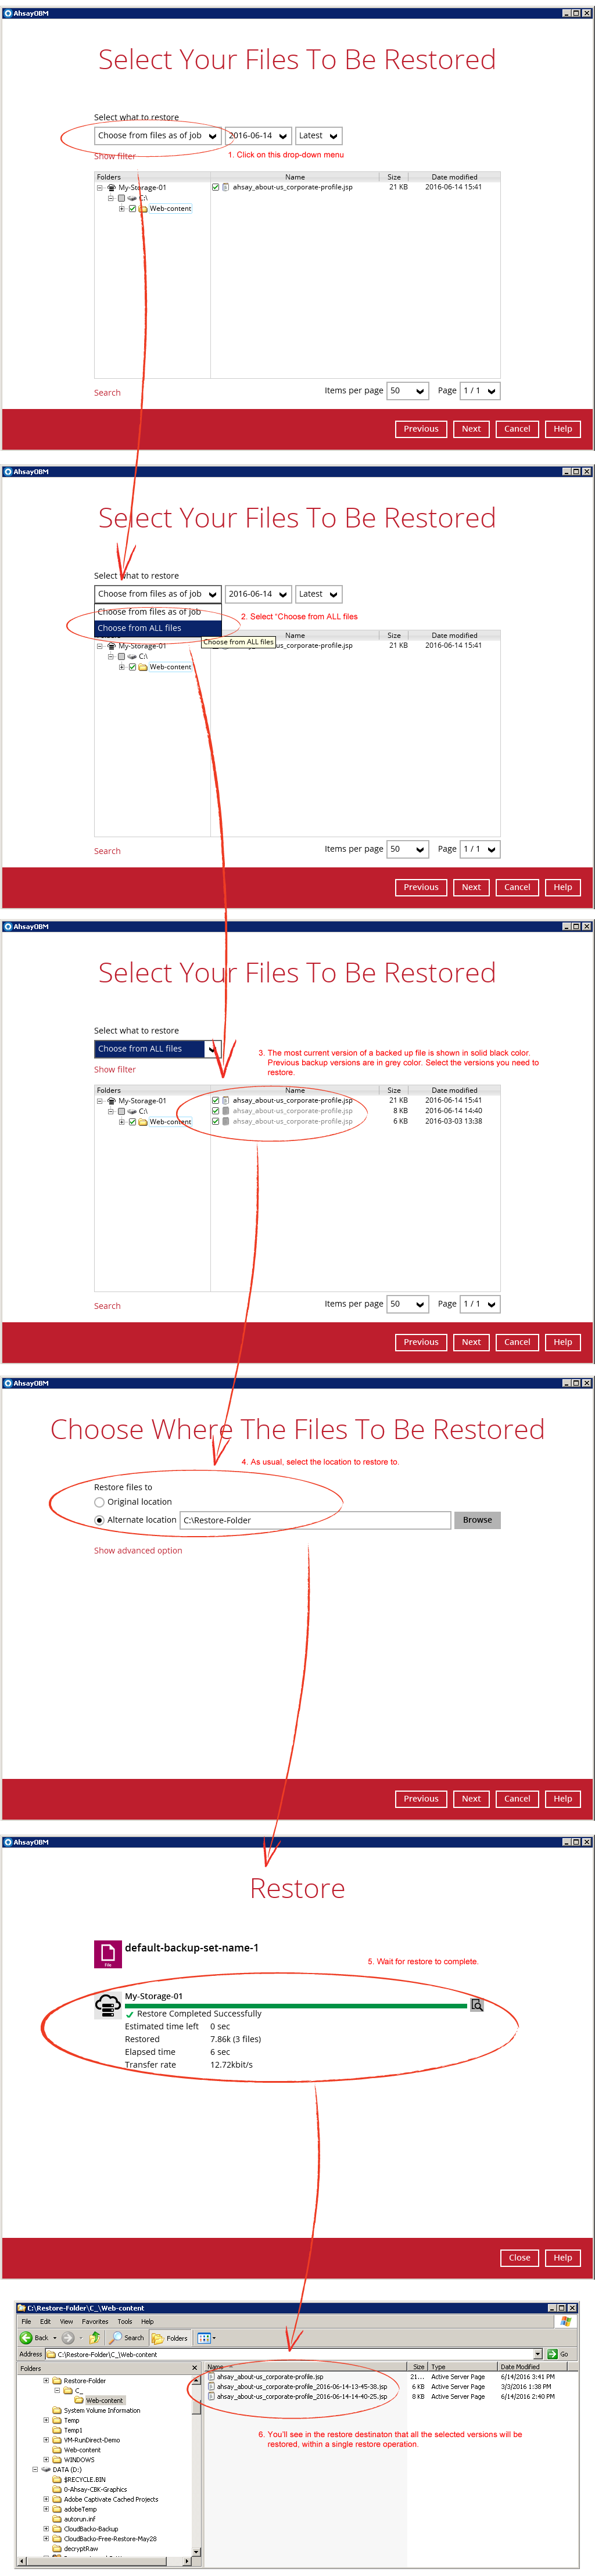 How to restore multiple versions in a single restore operation with AhsayOBM / AhsayACB